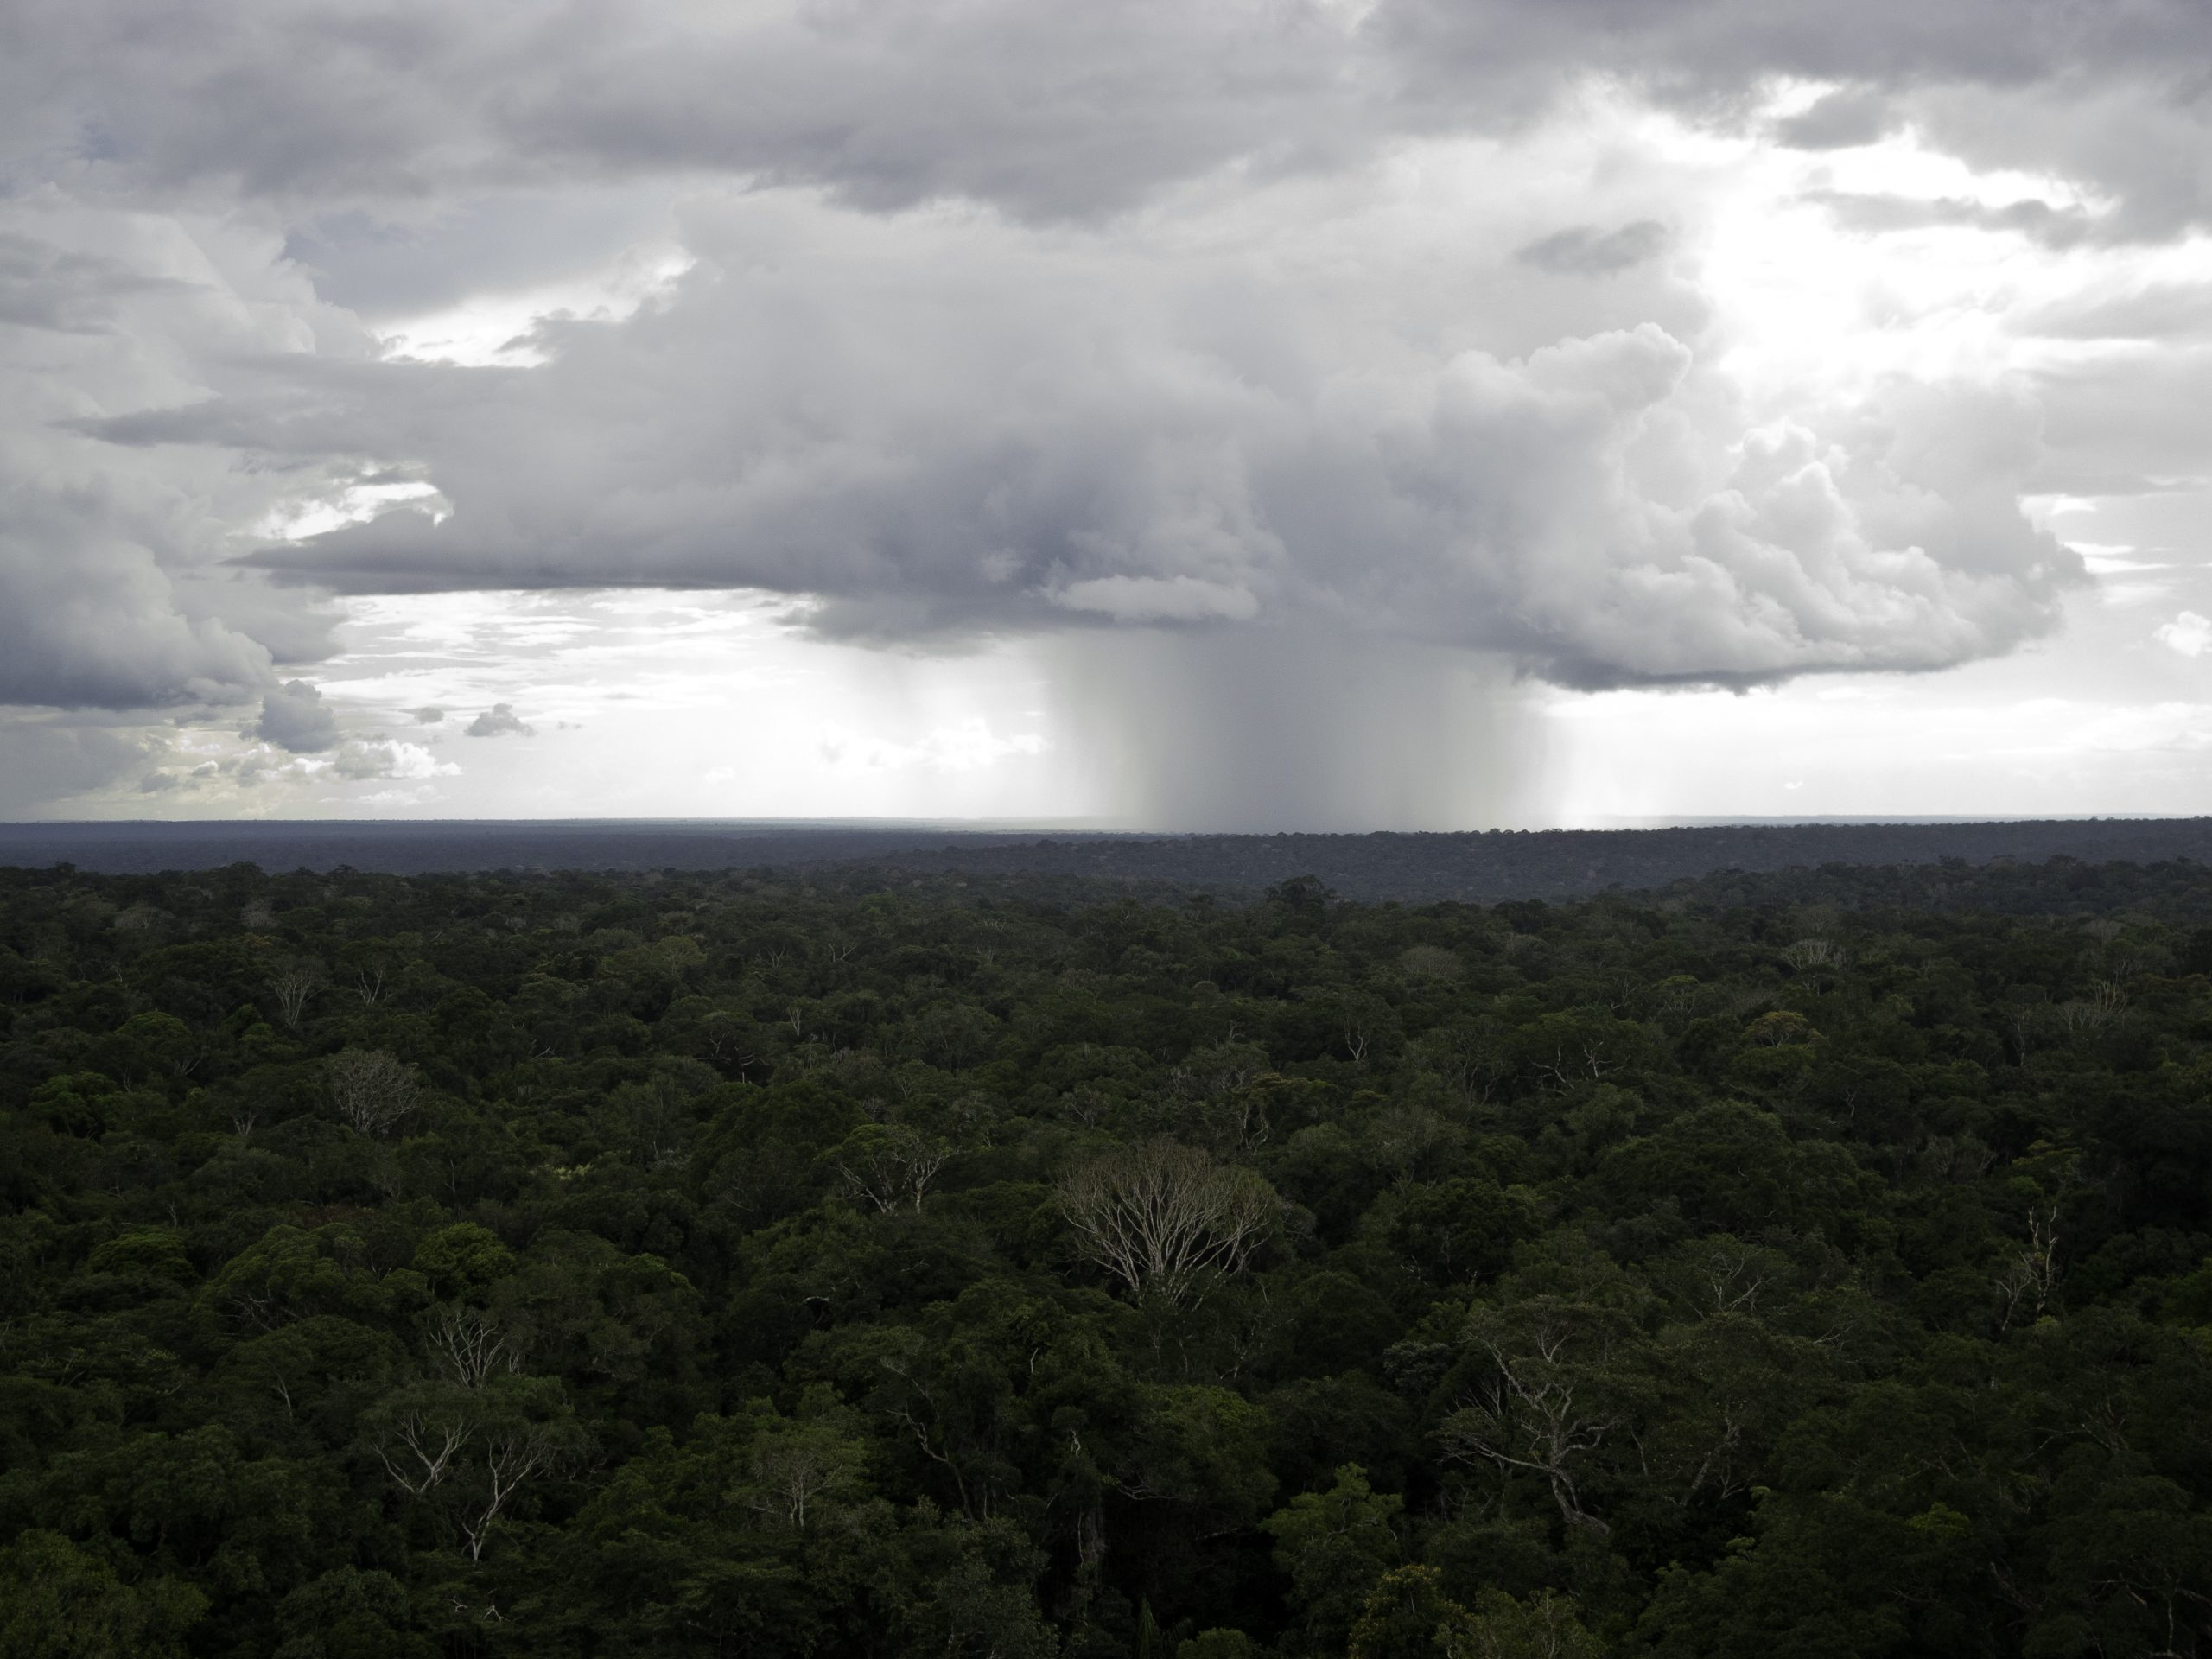 convective storm over the forest